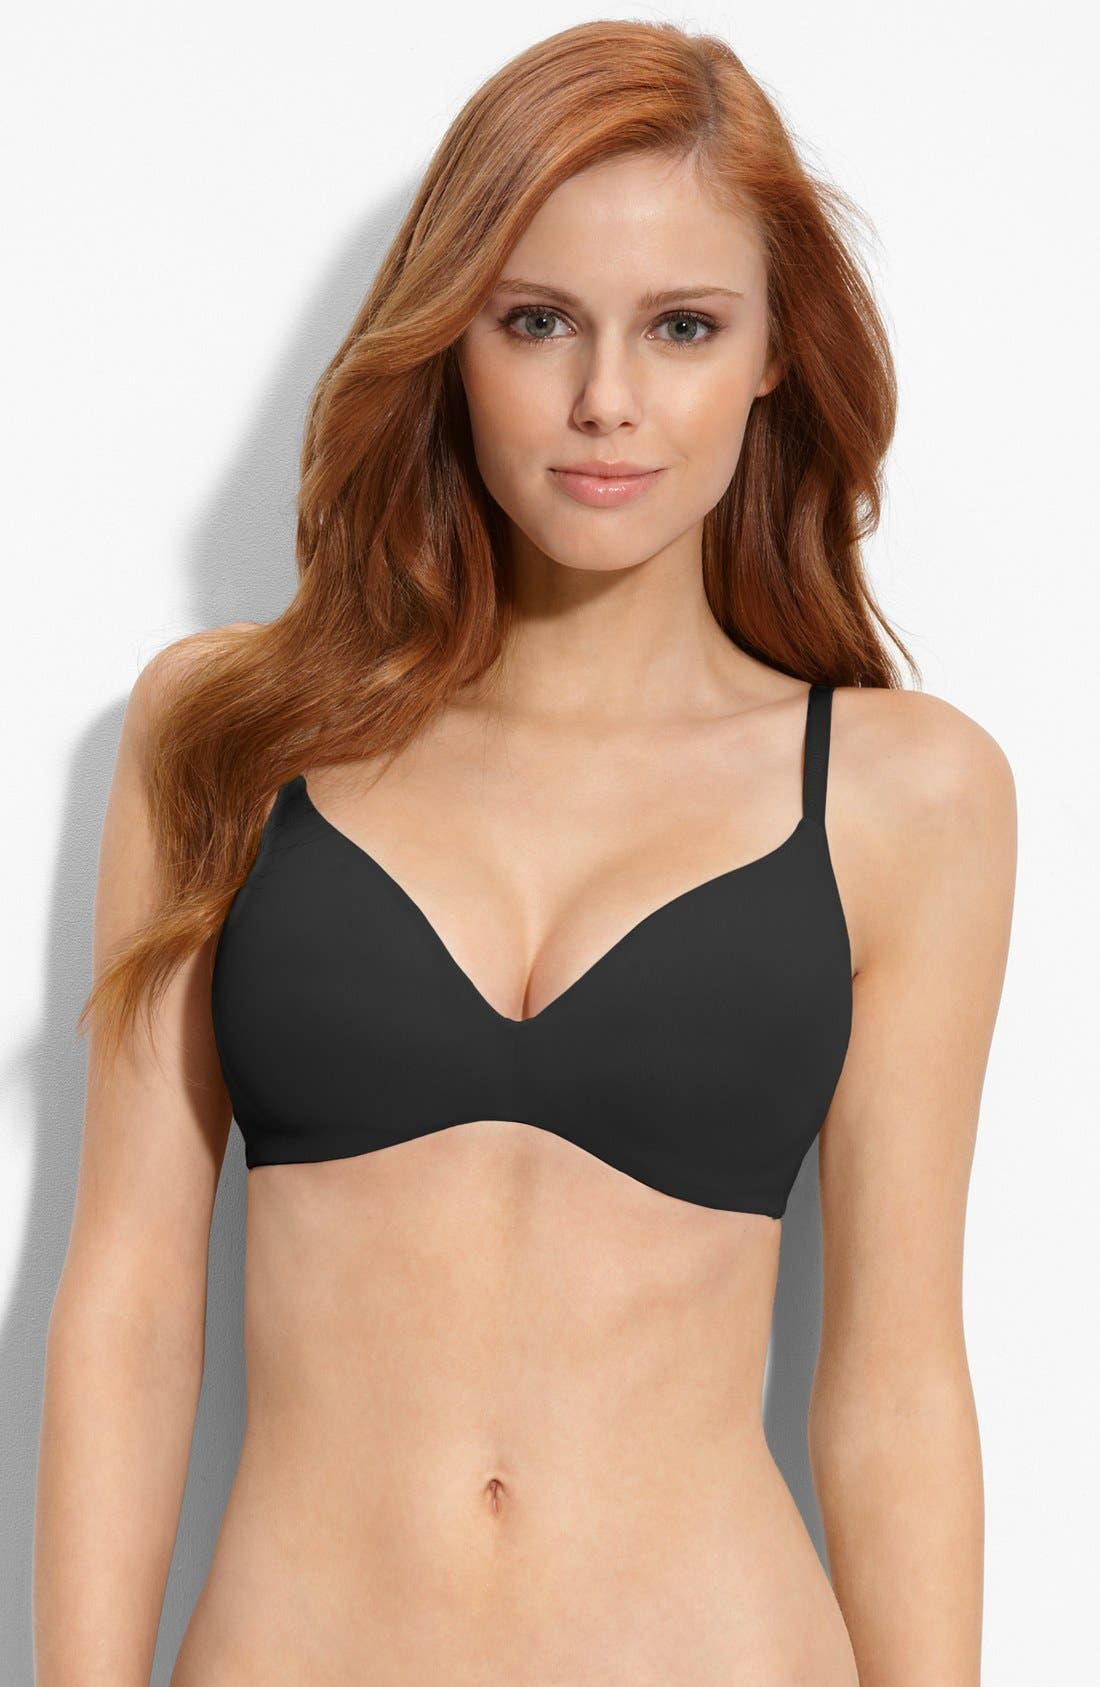 'F2781' Soft Cup Contour Bra,                             Main thumbnail 1, color,                             BLACK